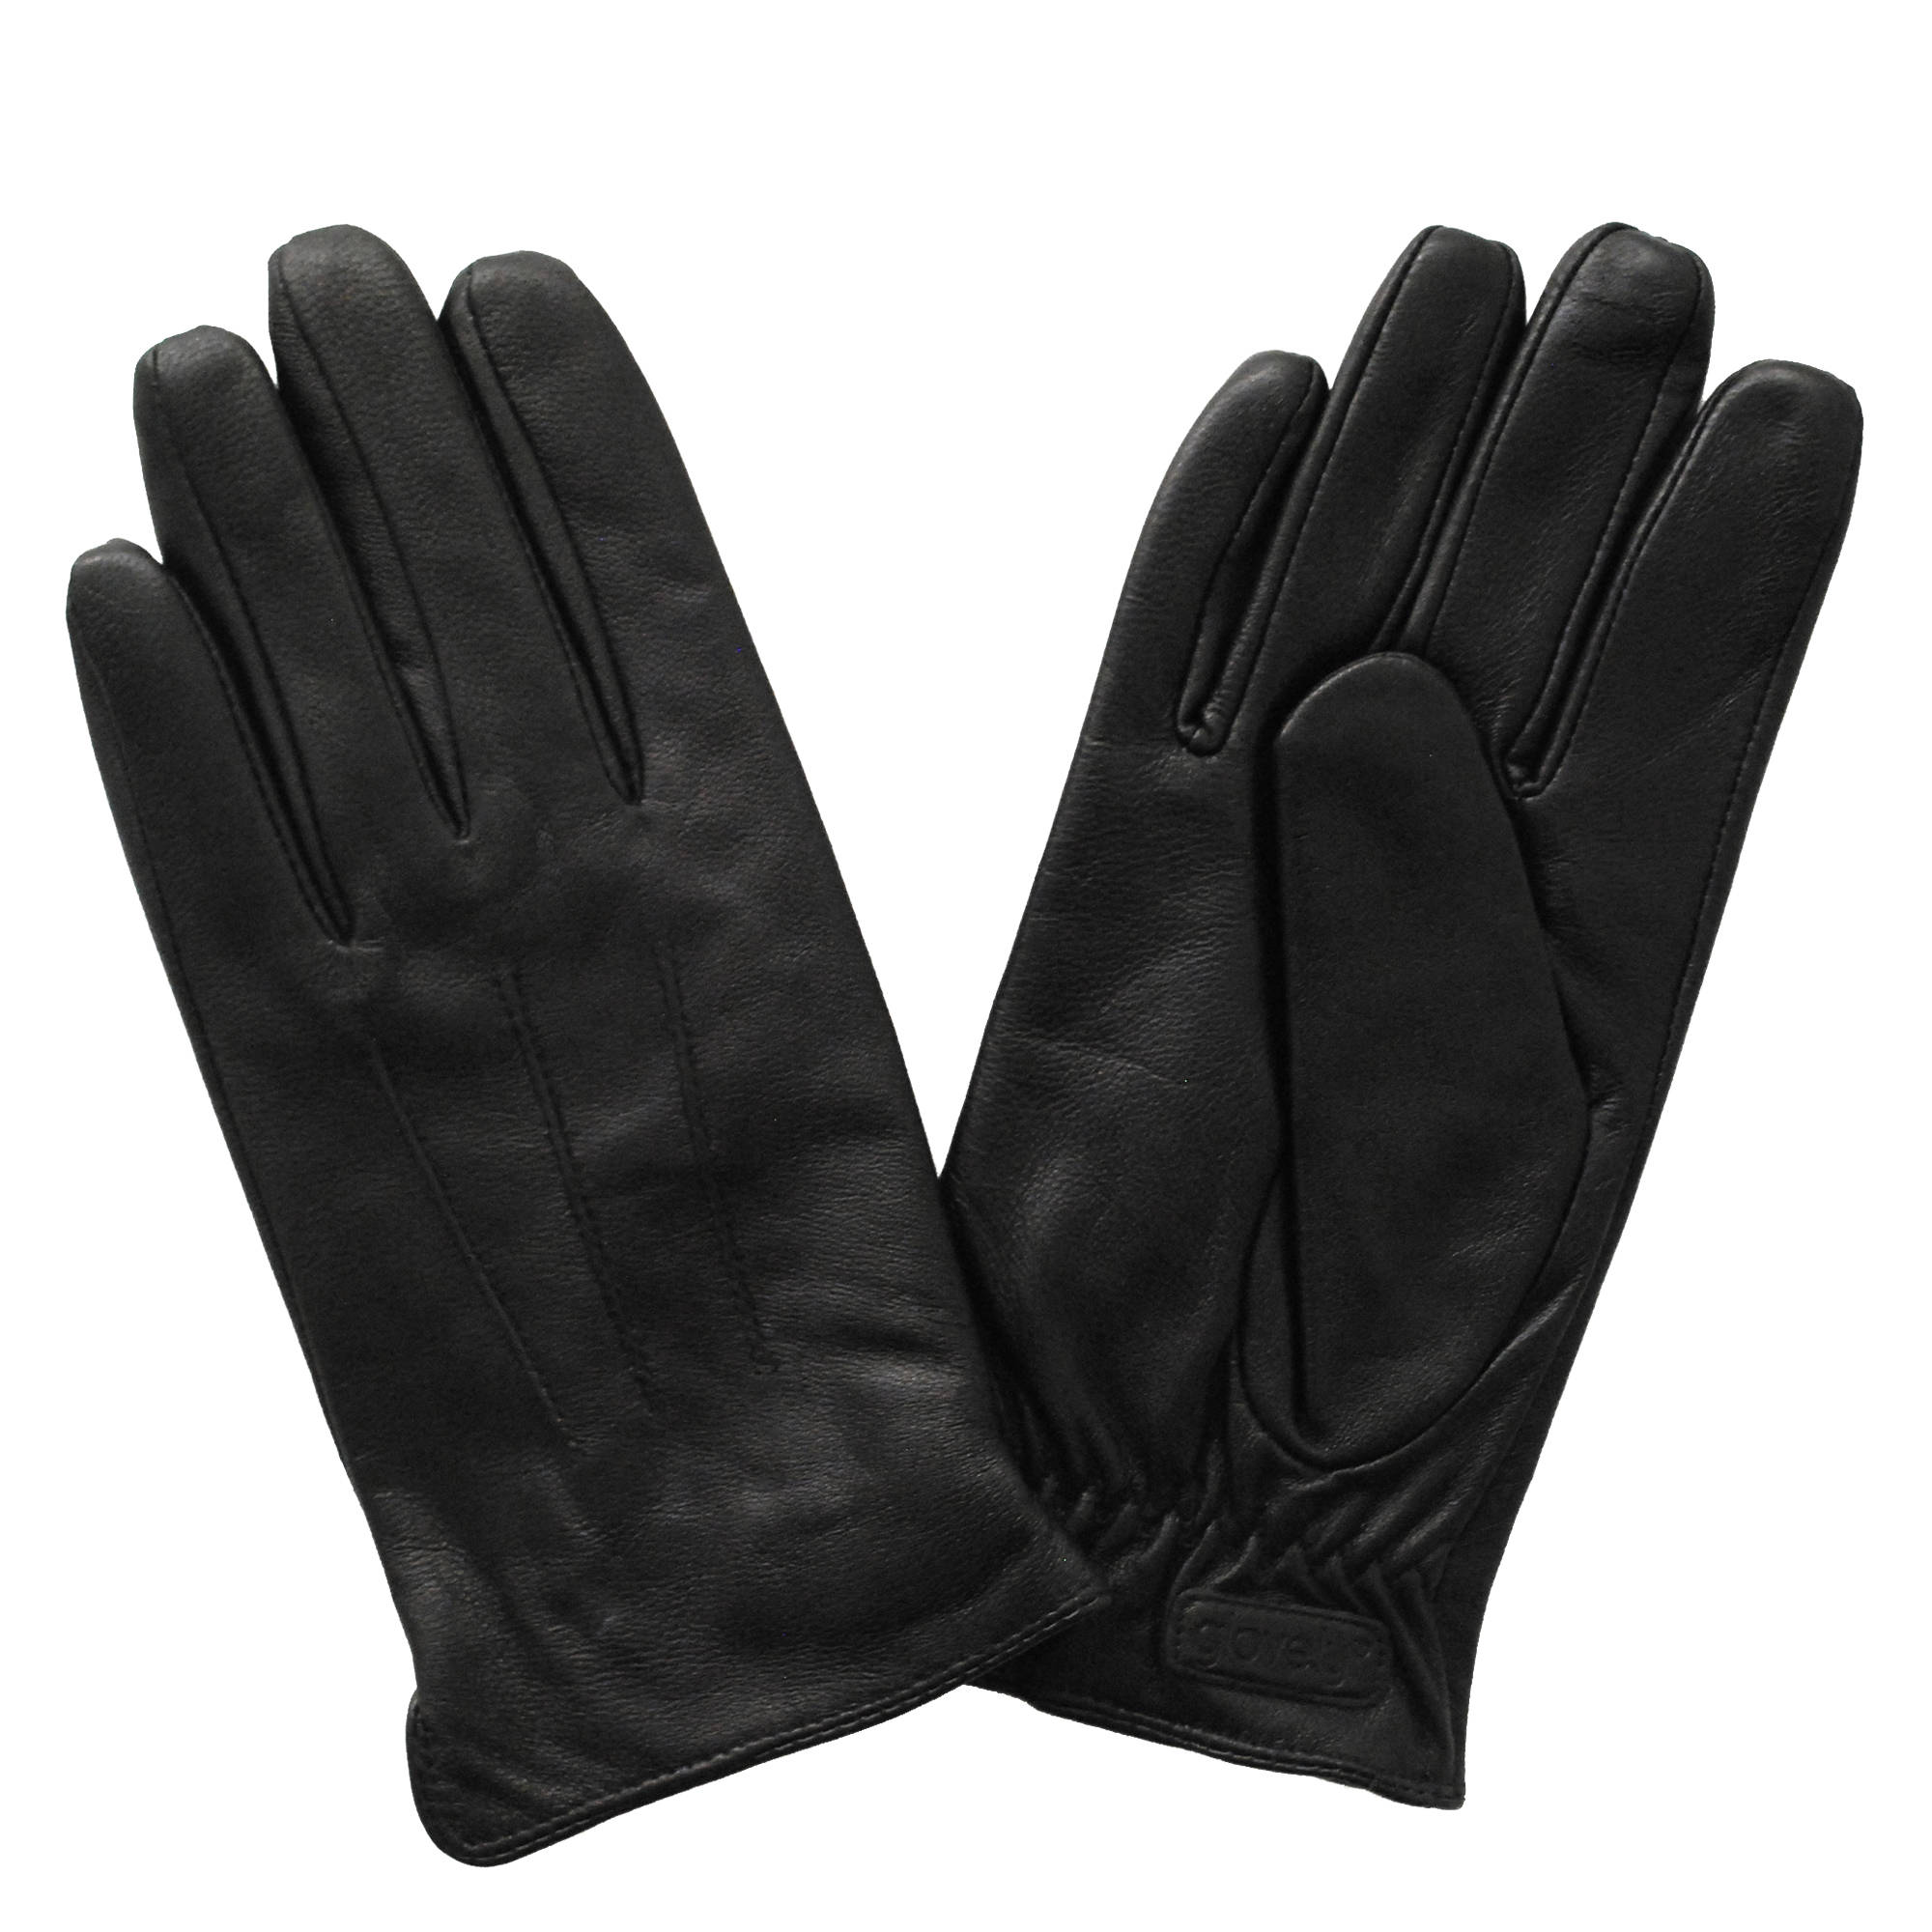 Leather gloves offer different looks for each need, functionality and style. Often, leather will stretch to conform to the hand with repeated wear. Designer gloves add an extra touch of quality.